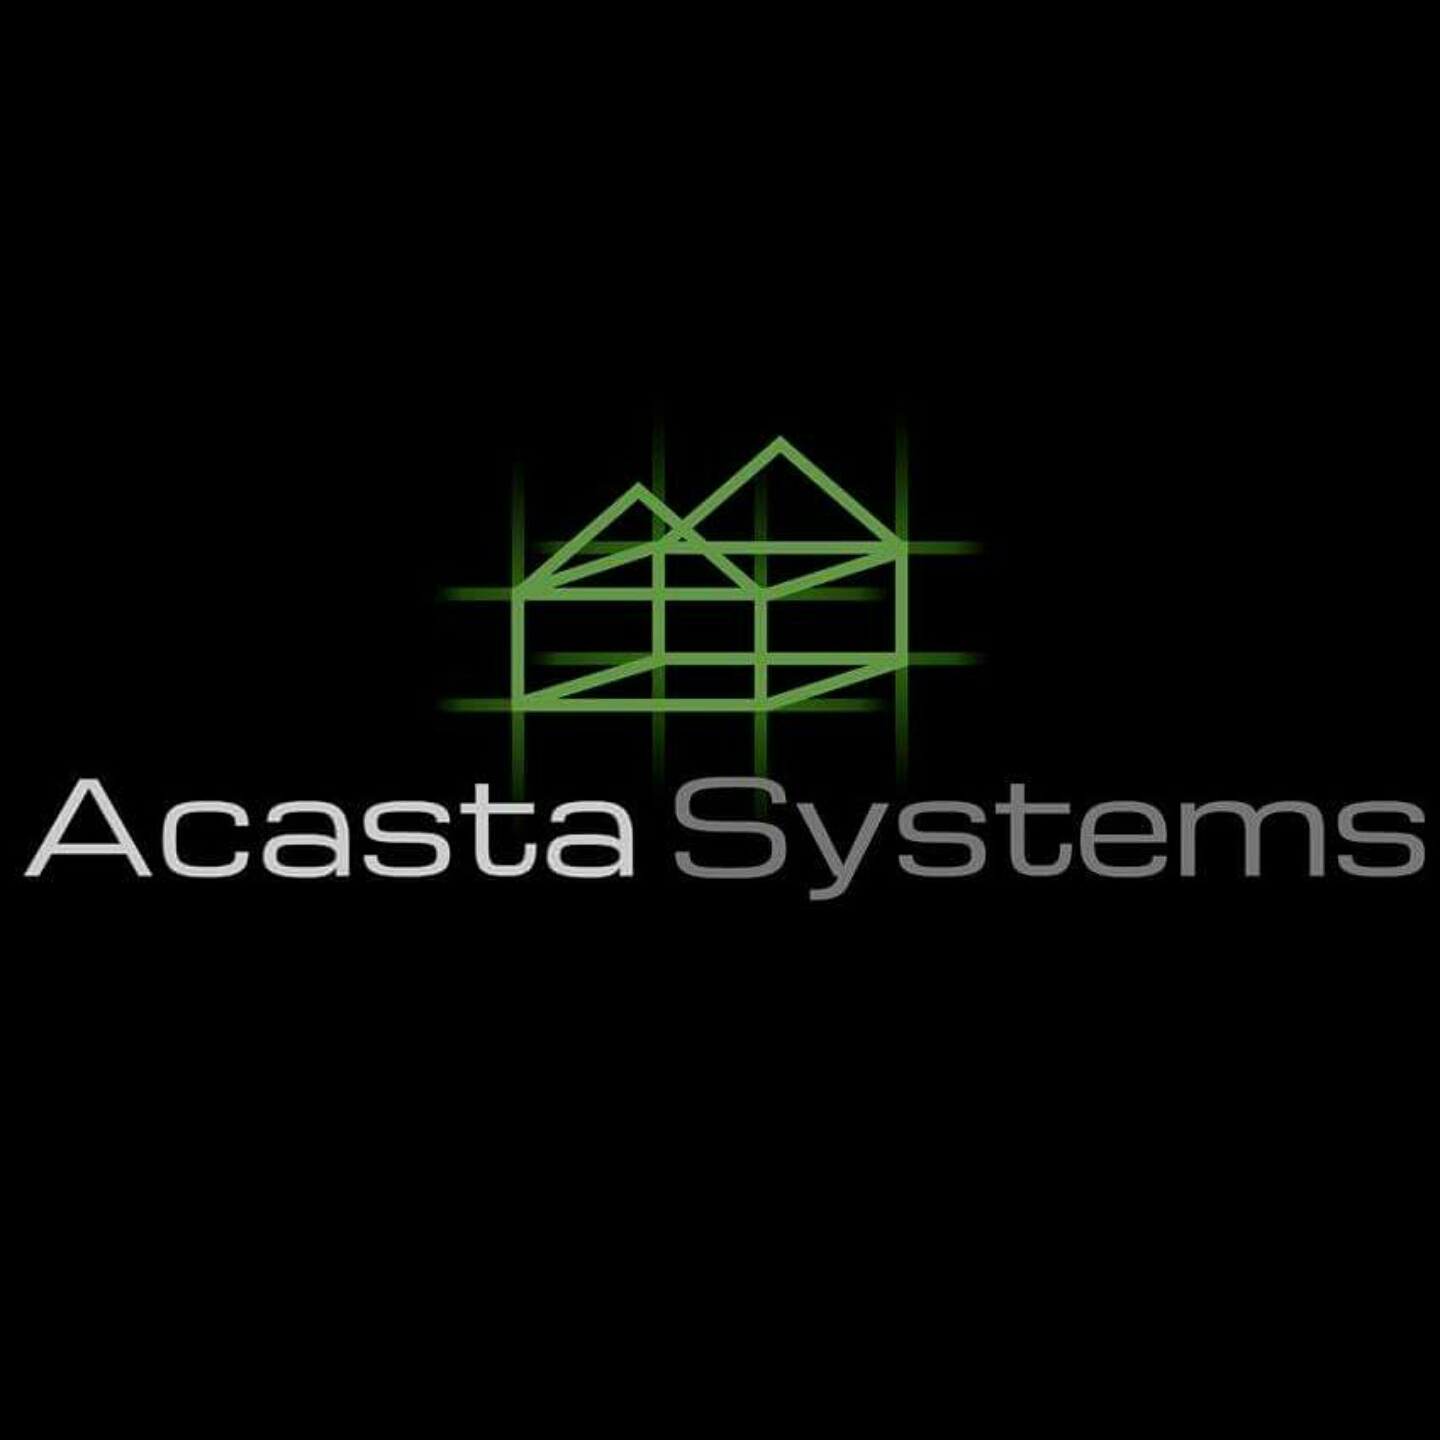 Acasta Systems painting